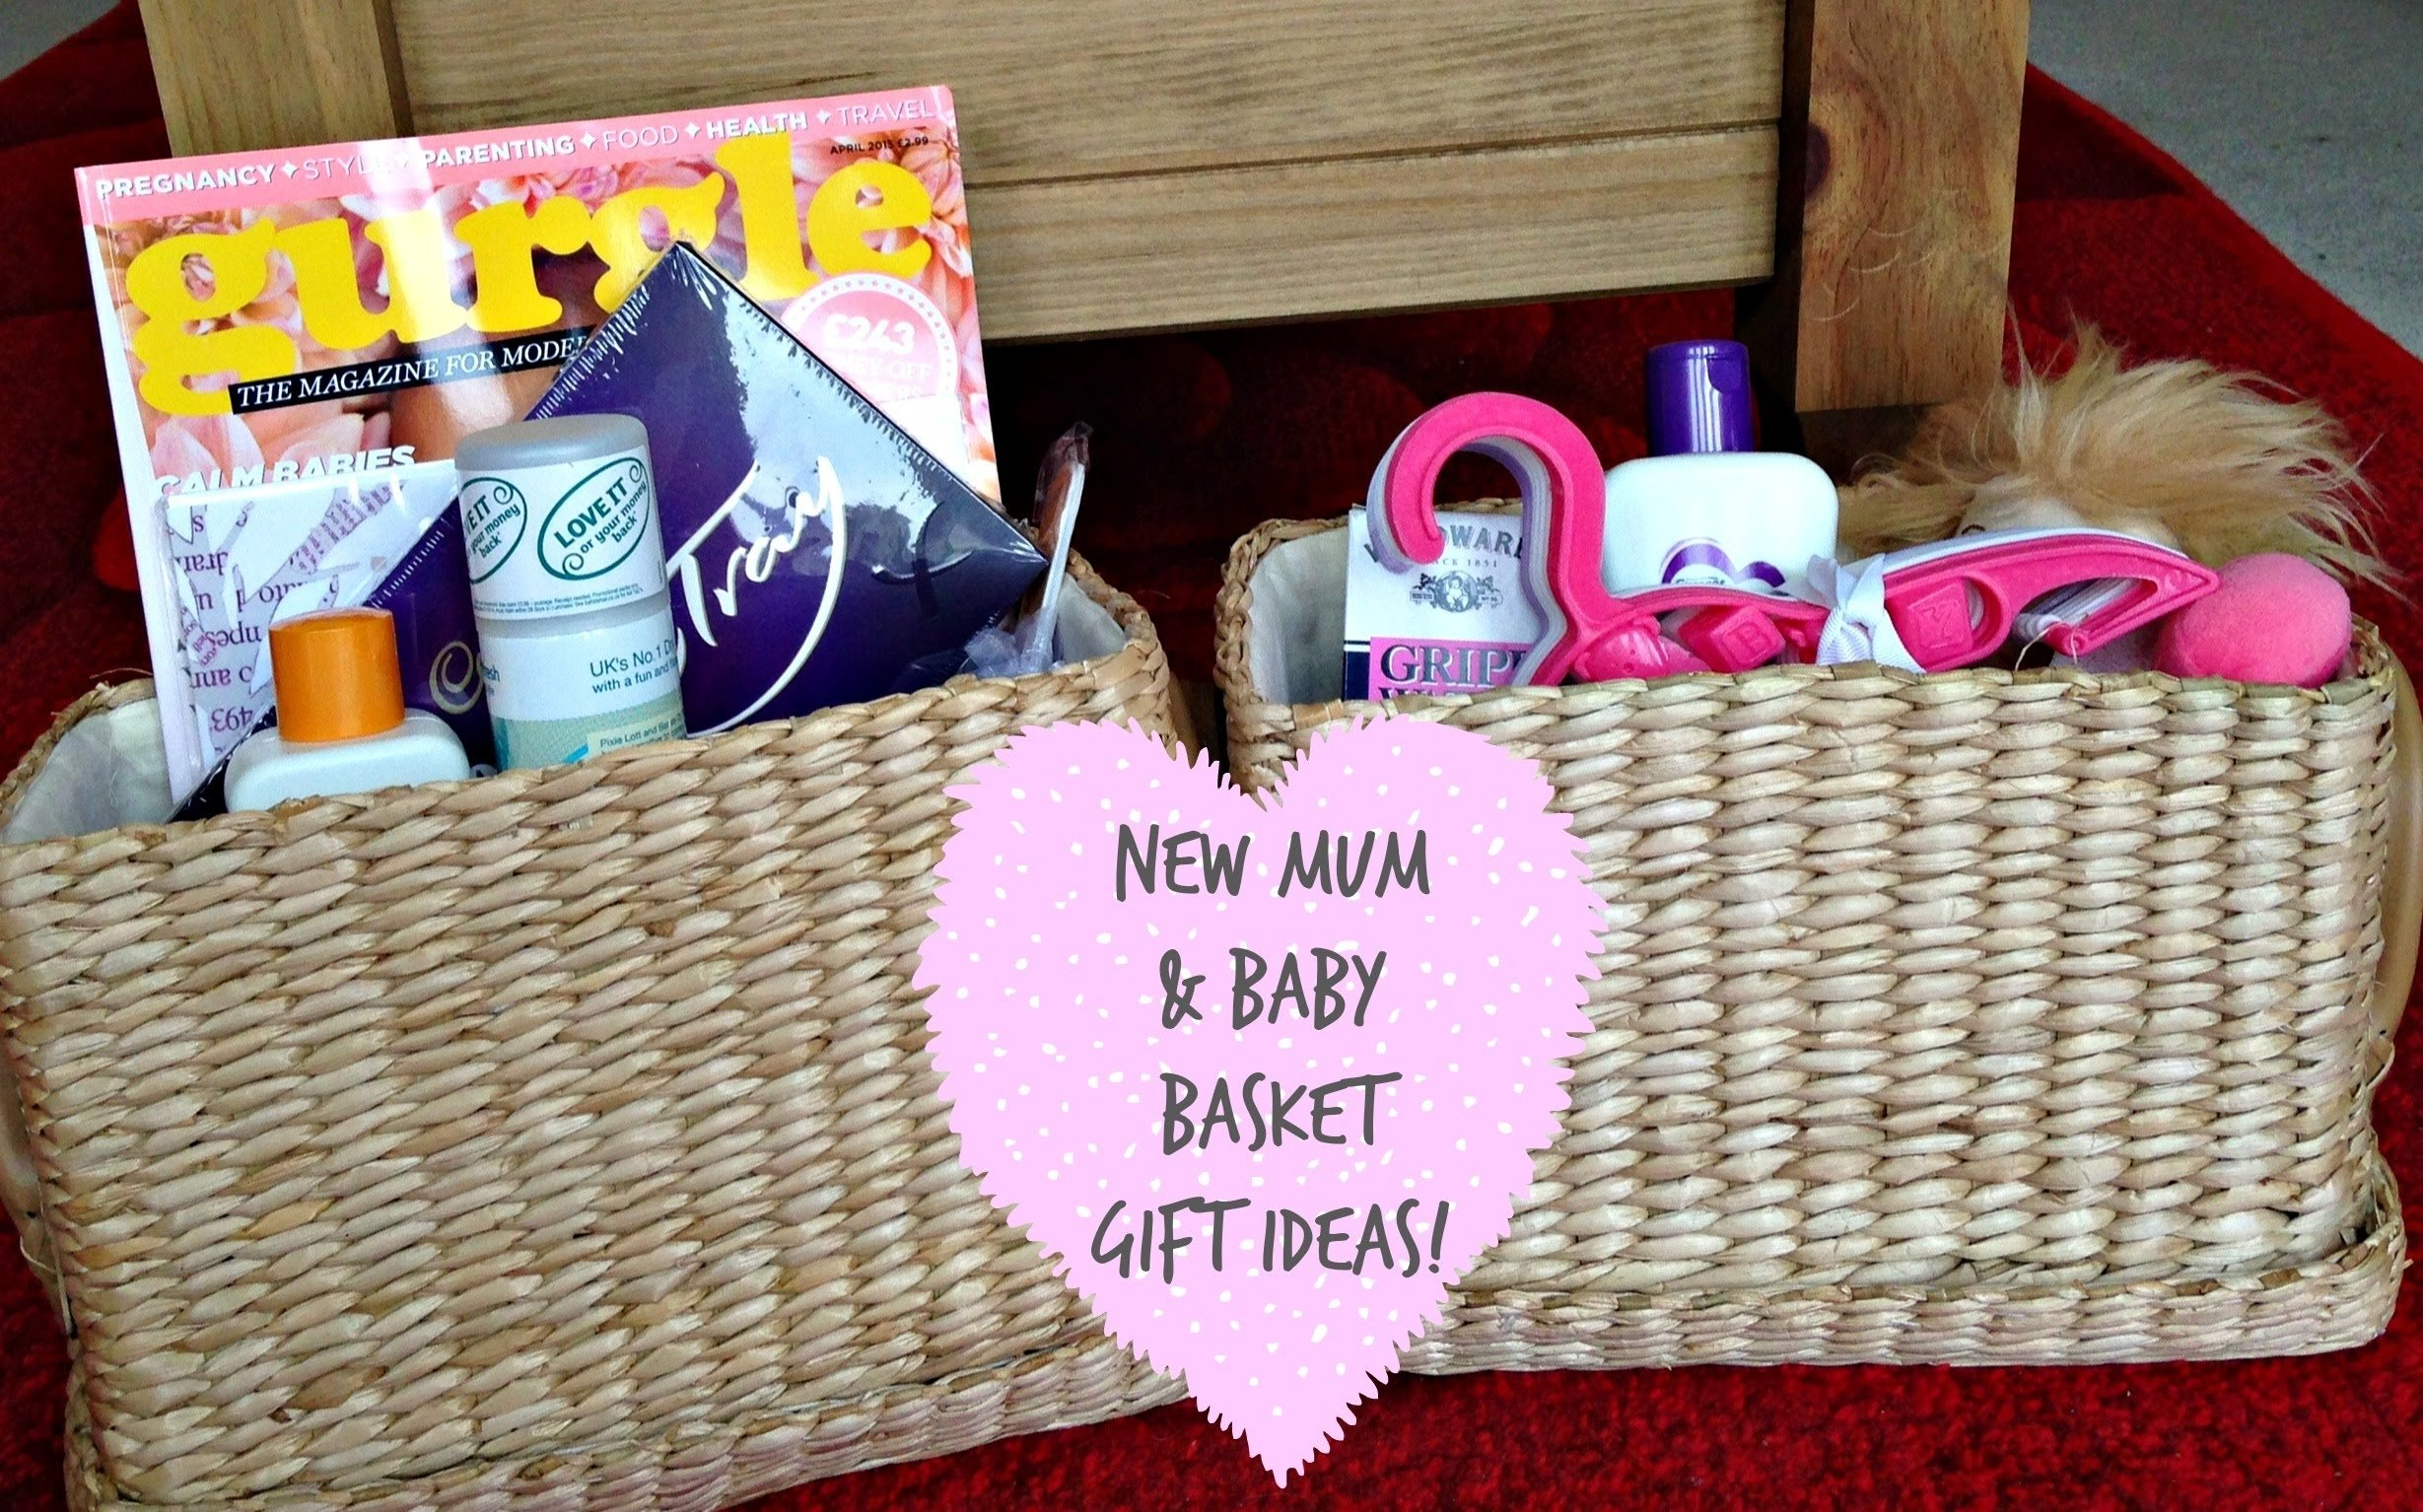 10 Best New Mom Gift Basket Ideas new mum baby basket gift ideas kerry dyer youtube 1 2021